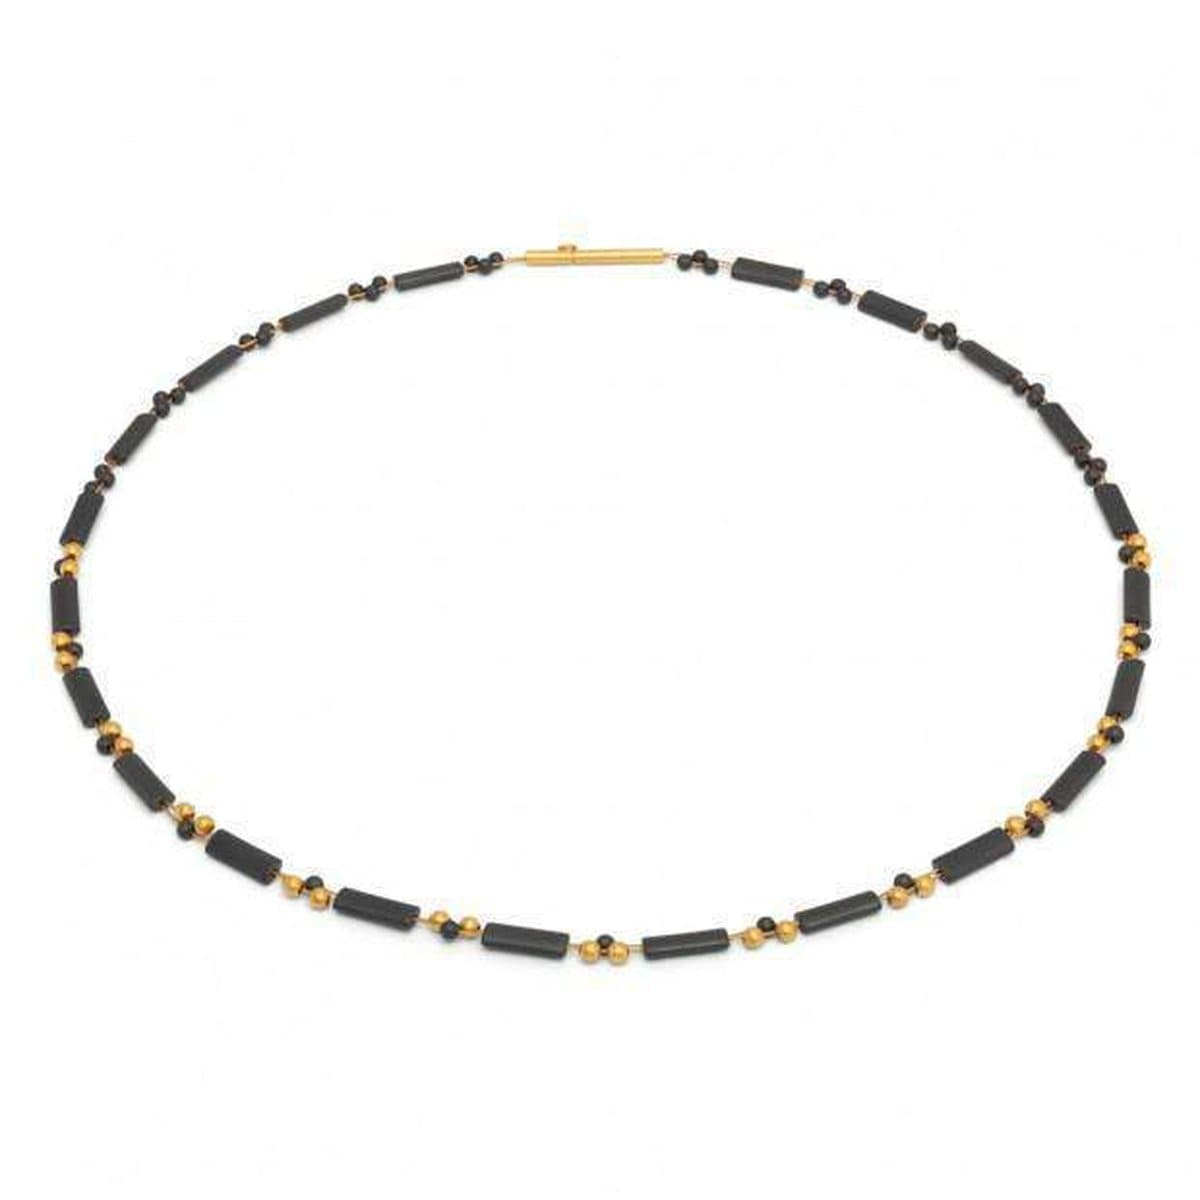 Rigoletti Hematine Necklace - 85216276-Bernd Wolf-Renee Taylor Gallery